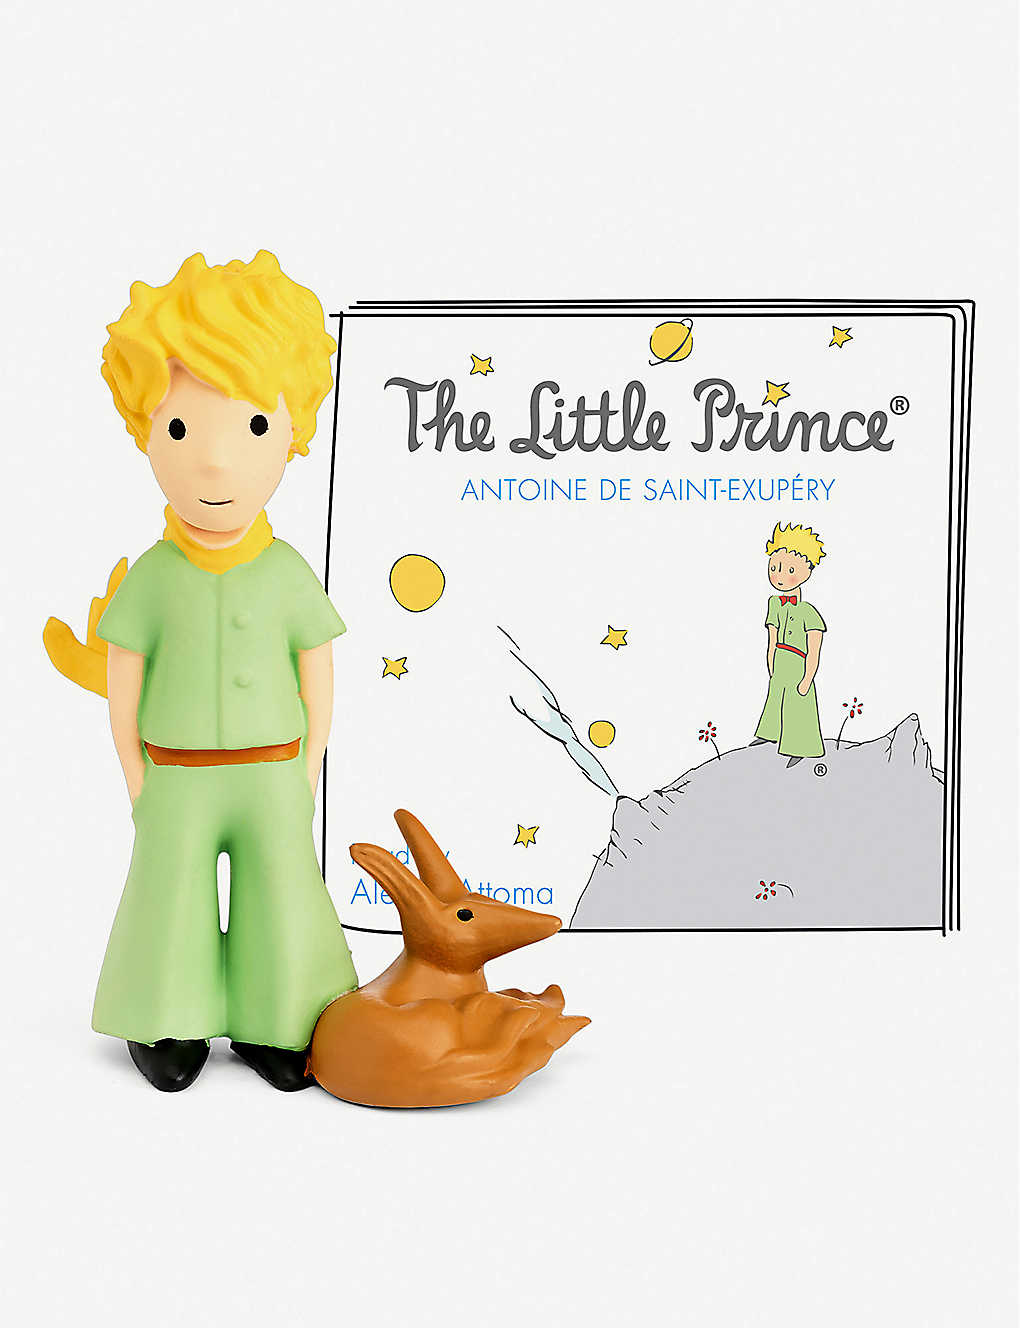 TONIES: The Little Prince audio character